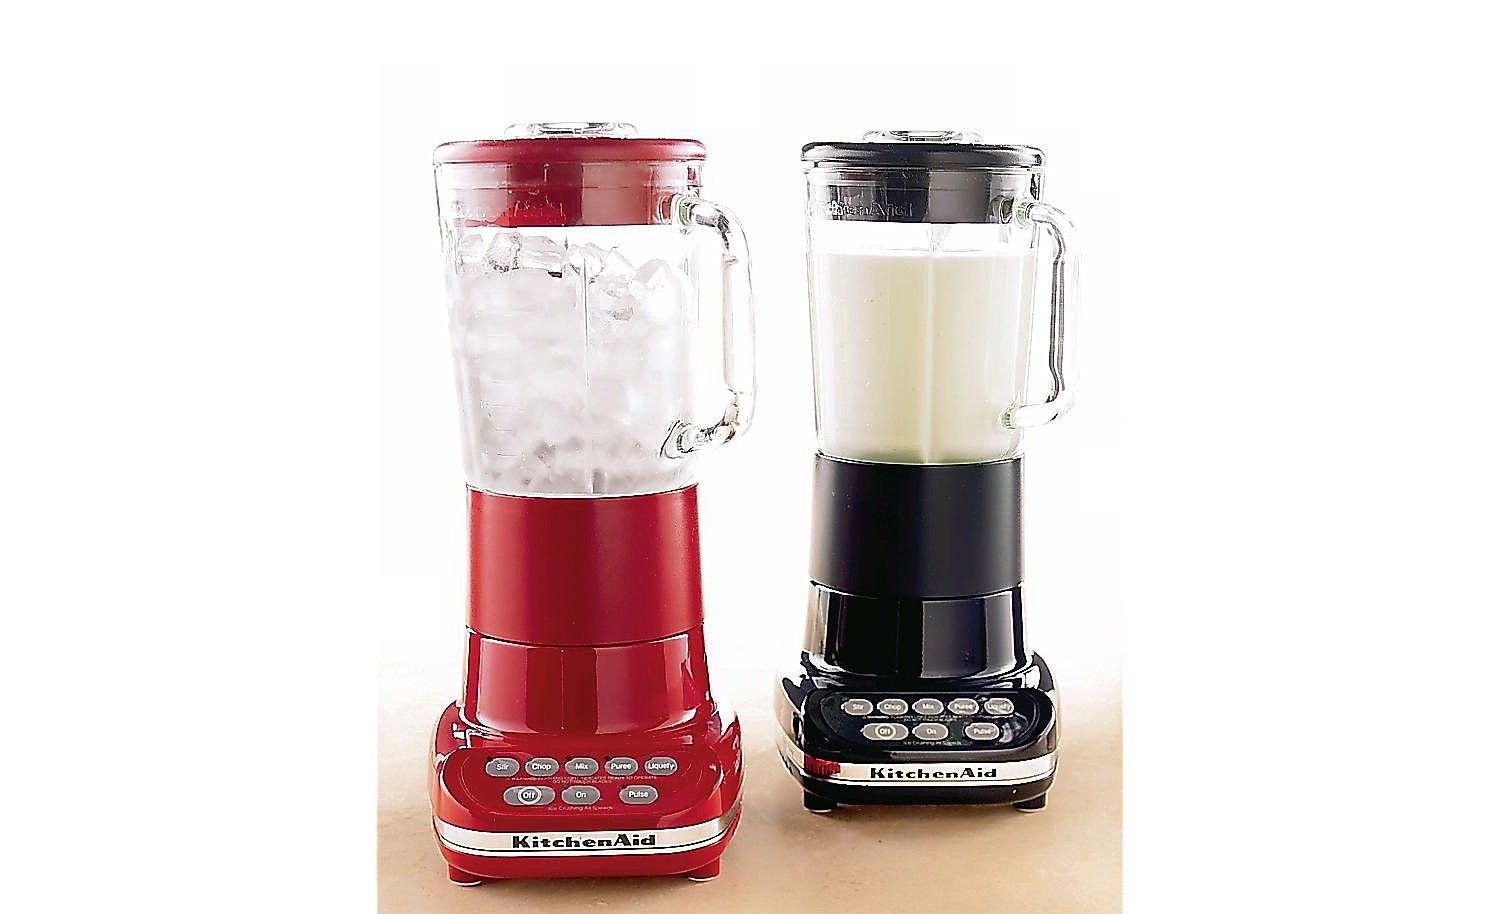 kitchenaid immersion blender kitchenaid. Black Bedroom Furniture Sets. Home Design Ideas